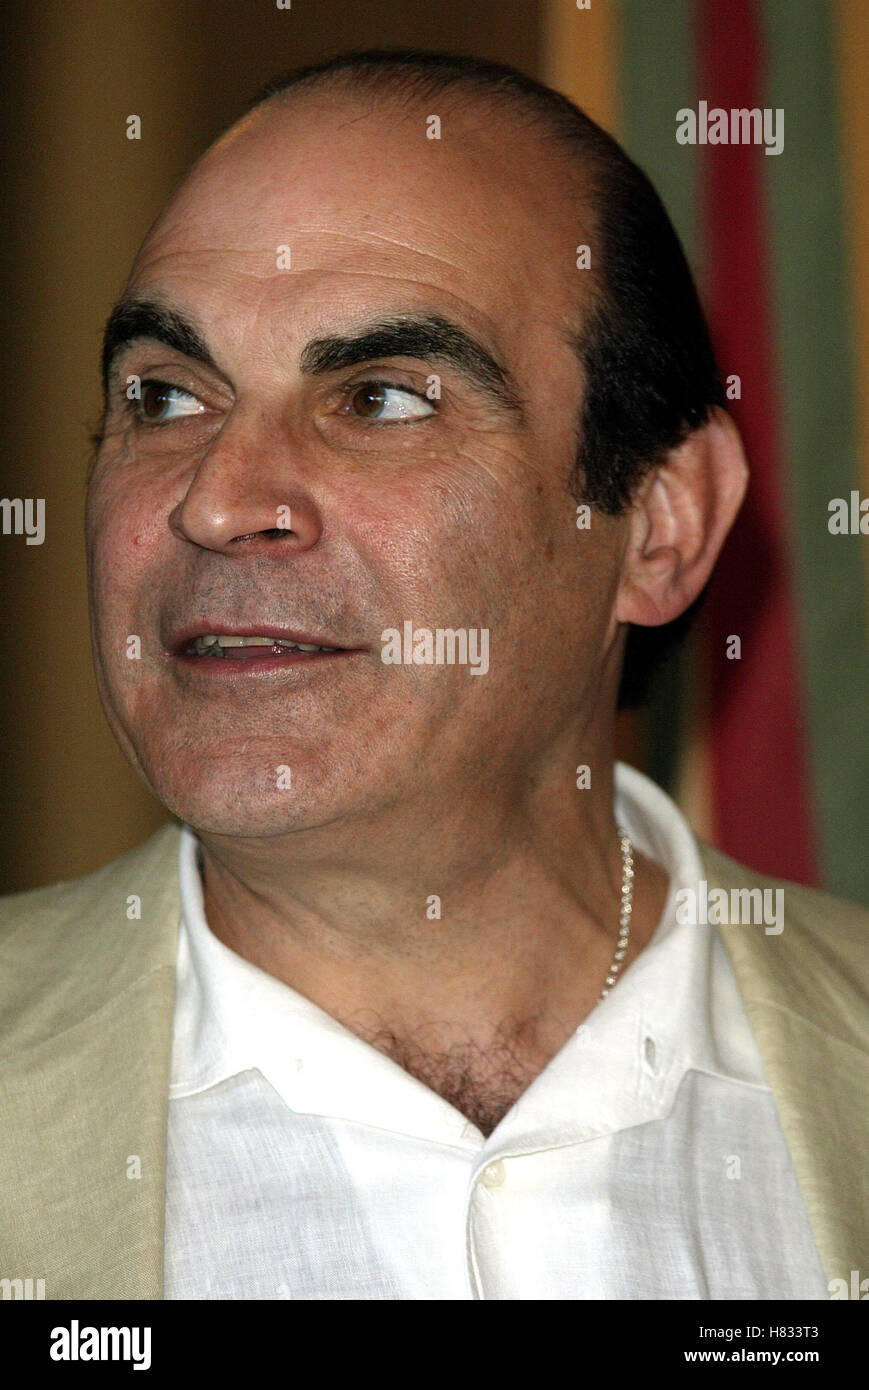 DAVID SUCHET CANNES FILM FESTIVAL 2002 CANNES FILM FESTIVAL CANNES FRANCE 21 May 2002 - Stock Image